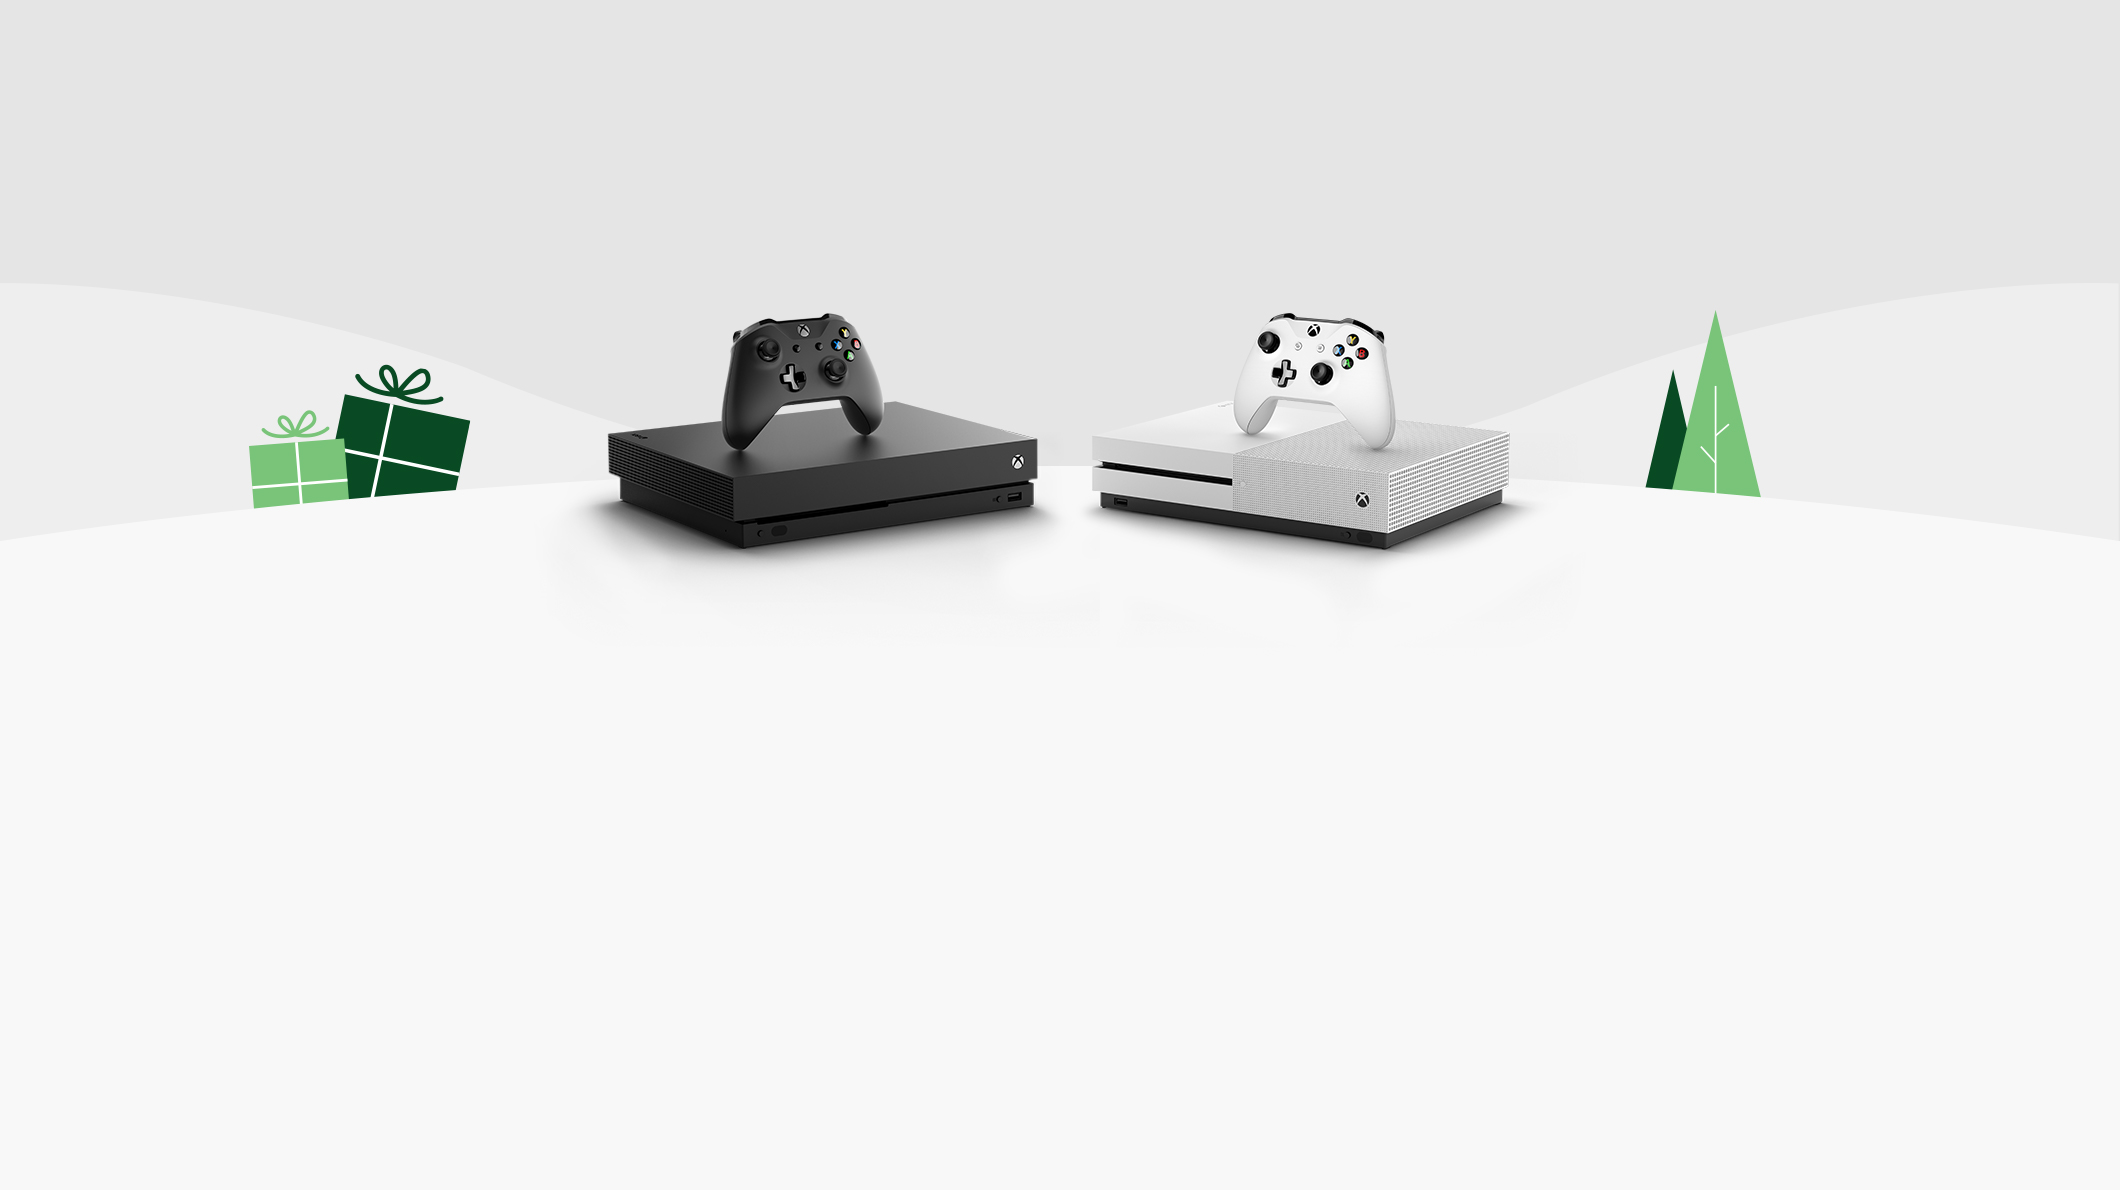 Xbox One X and Xbox One S consoles.